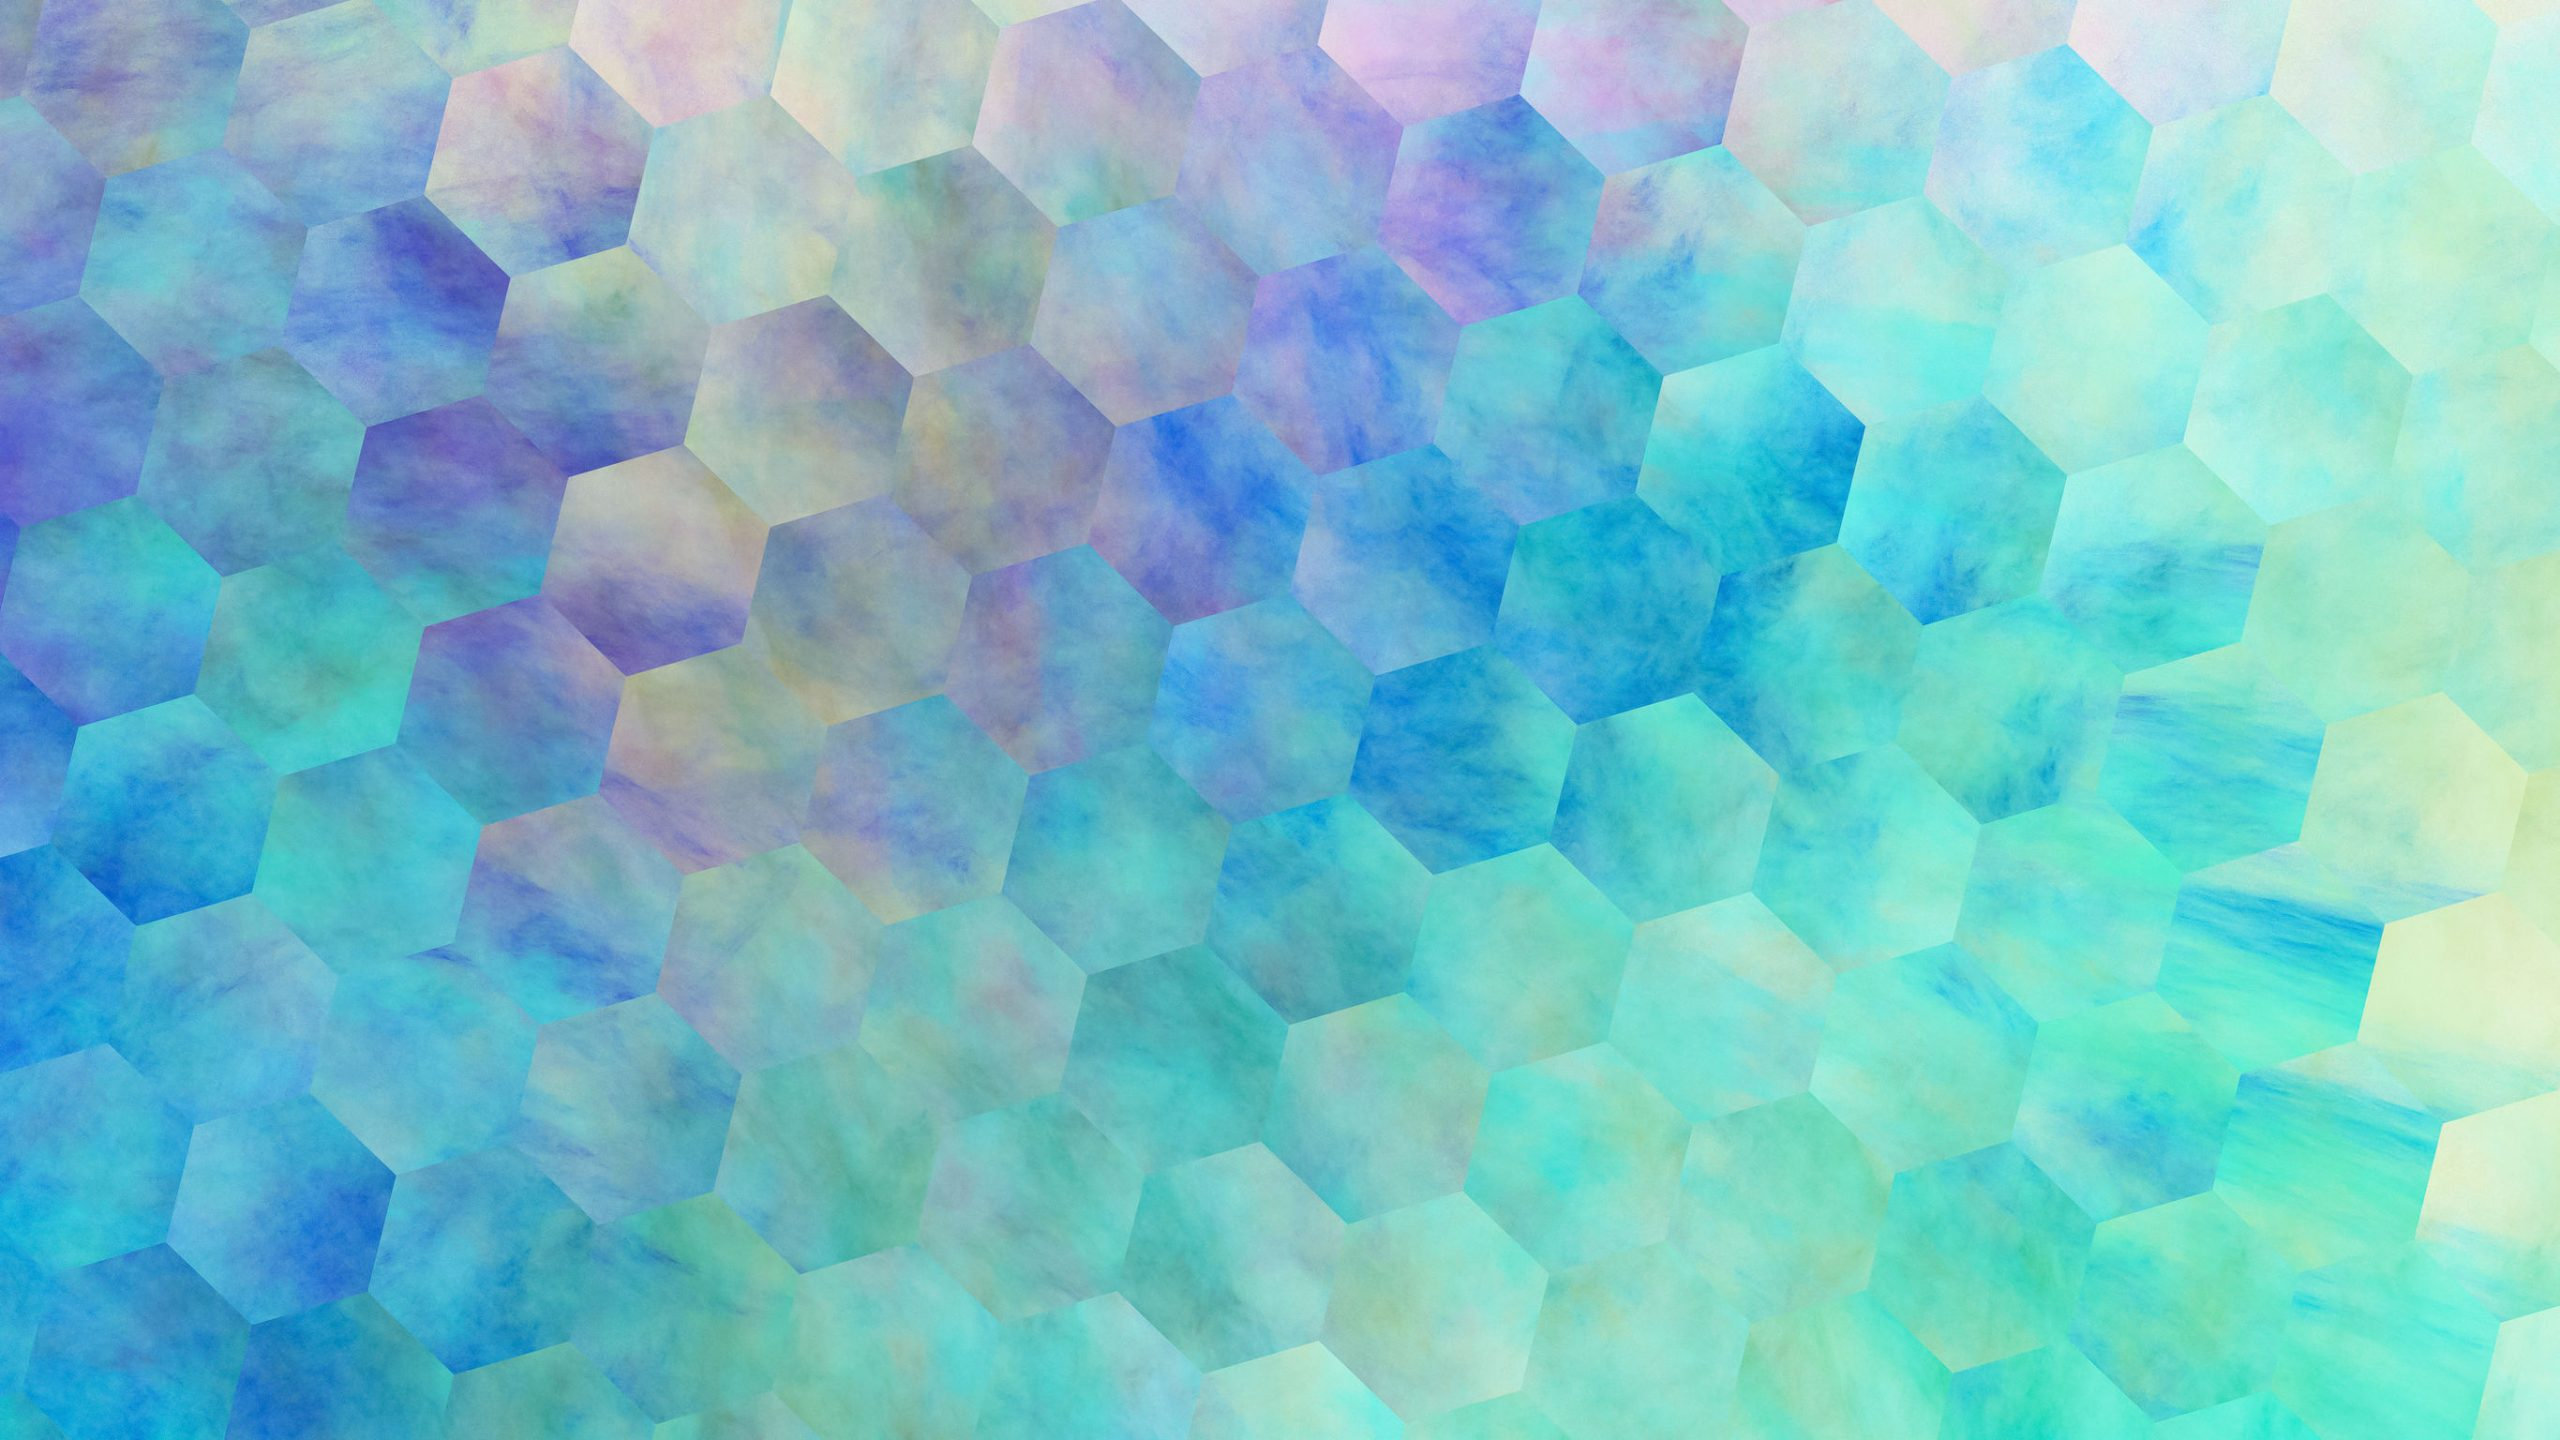 Abstract violet and blue hexagonal texture. Geometric fractal background. Fantasy digital art. 3D rendering.